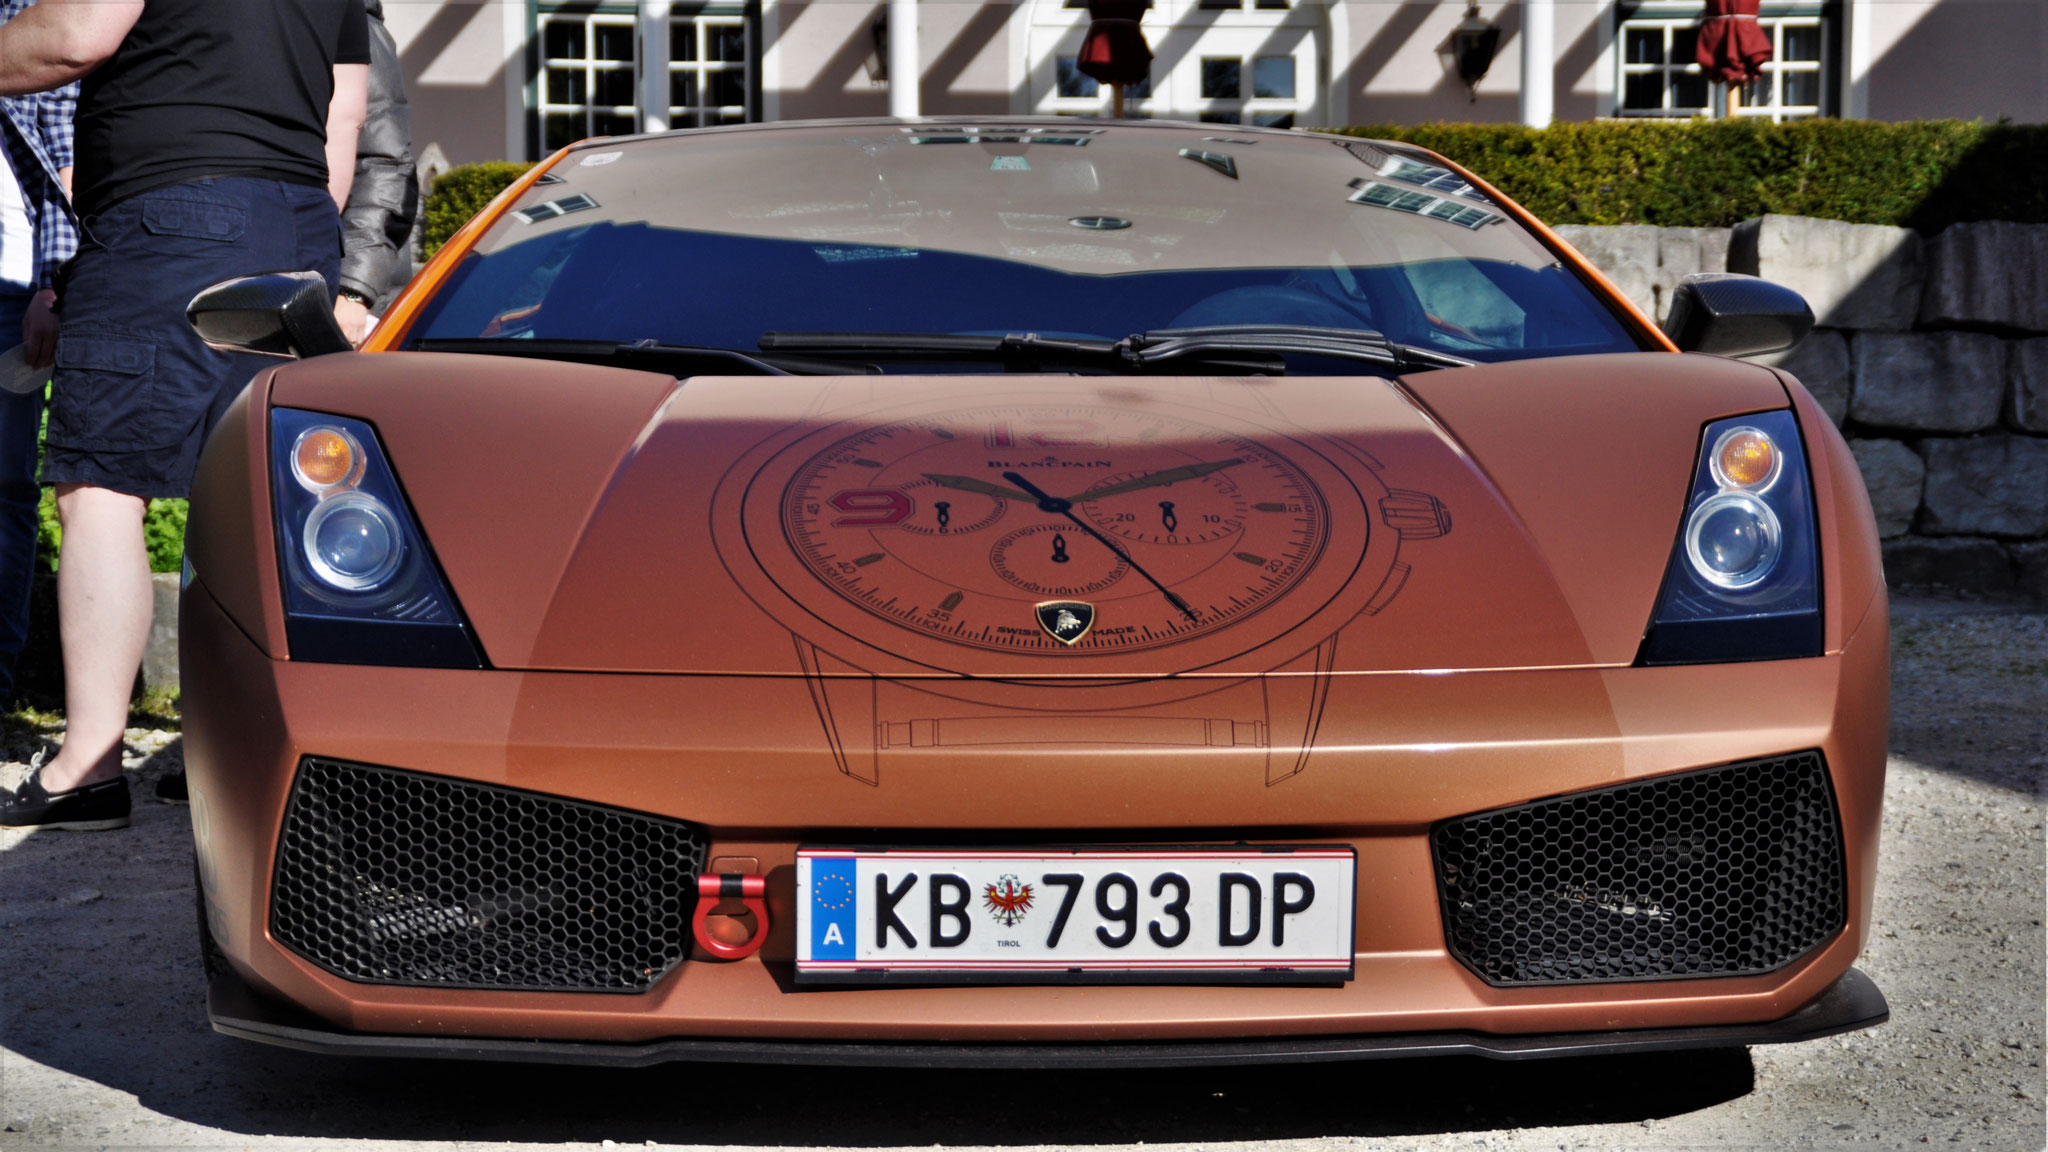 Lamborghini Gallardo Superleggera - KB-793-DP (AUT)